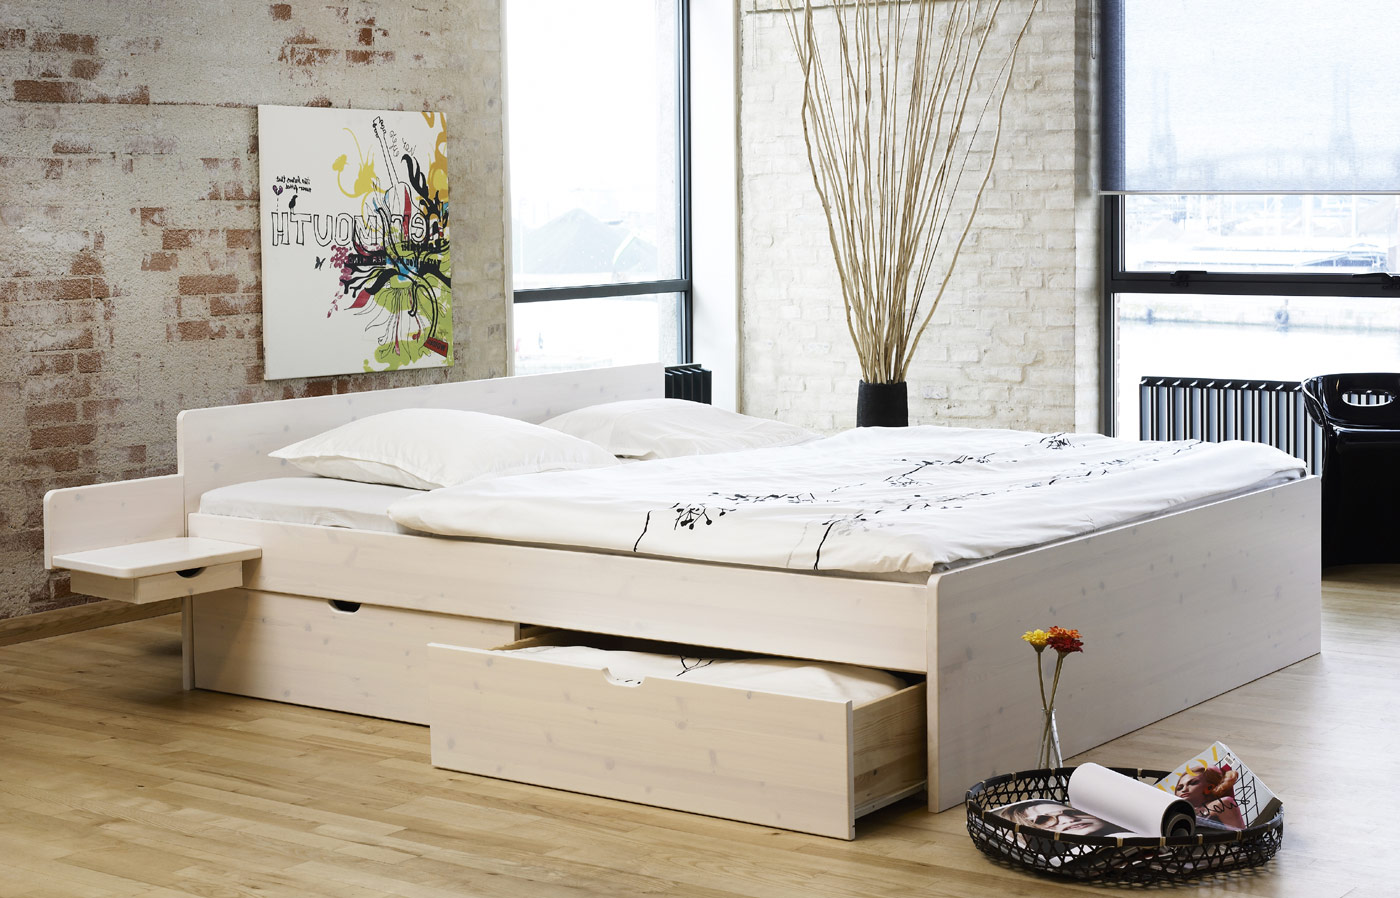 pin mit schubladen 100x200 wei kolonial holzbett kiefer. Black Bedroom Furniture Sets. Home Design Ideas